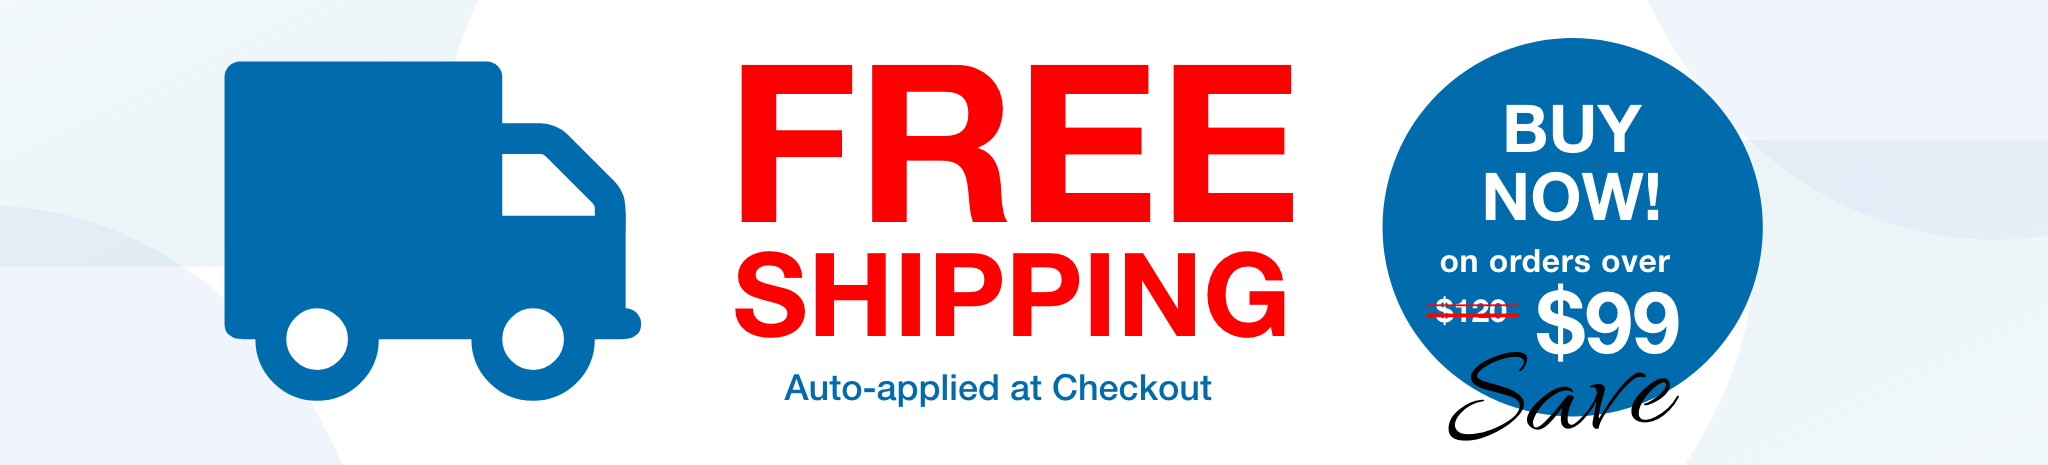 free shipping $99 new